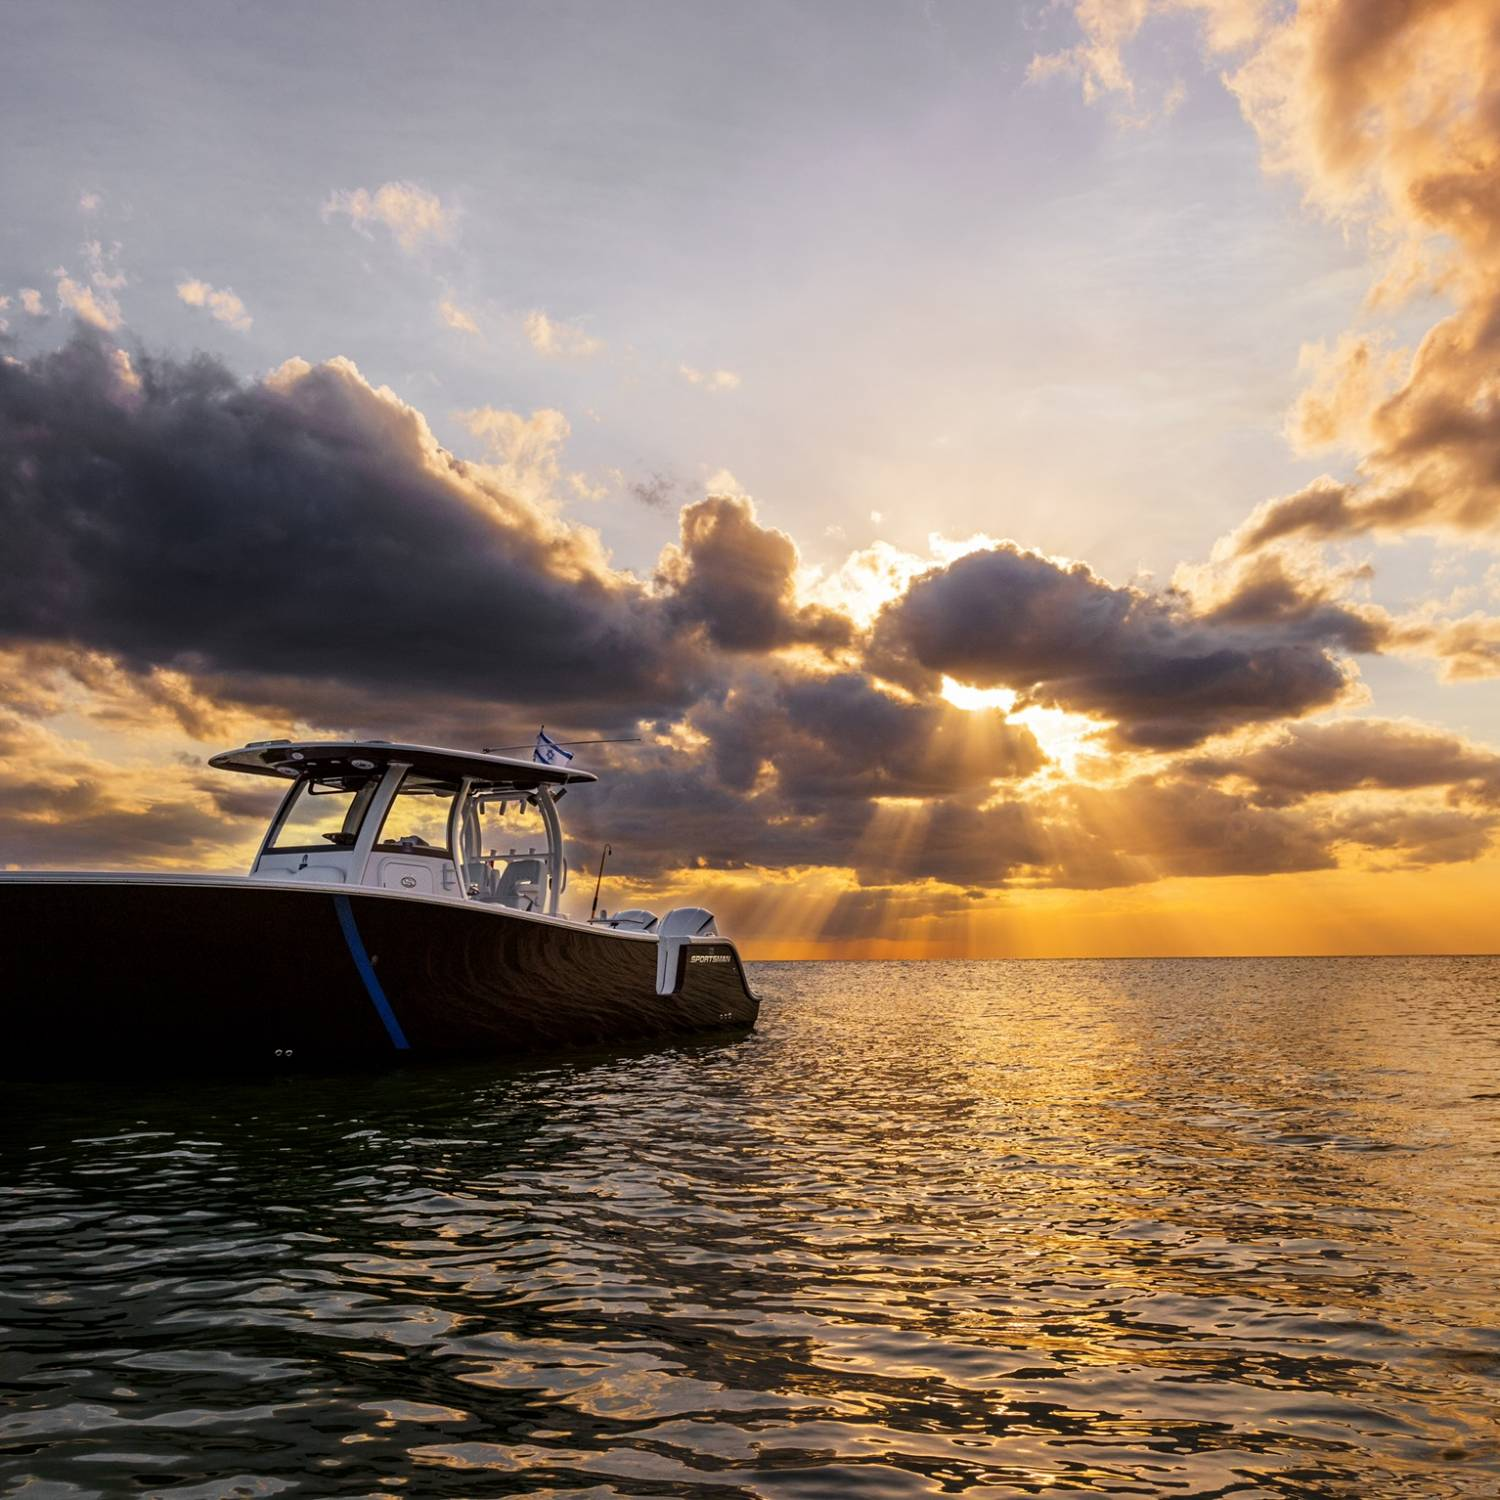 Title: Hanging out at the beach - On board their Sportsman Open 302 Center Console - Location: Naples fl. Participating in the Photo Contest #SportsmanAugust2021